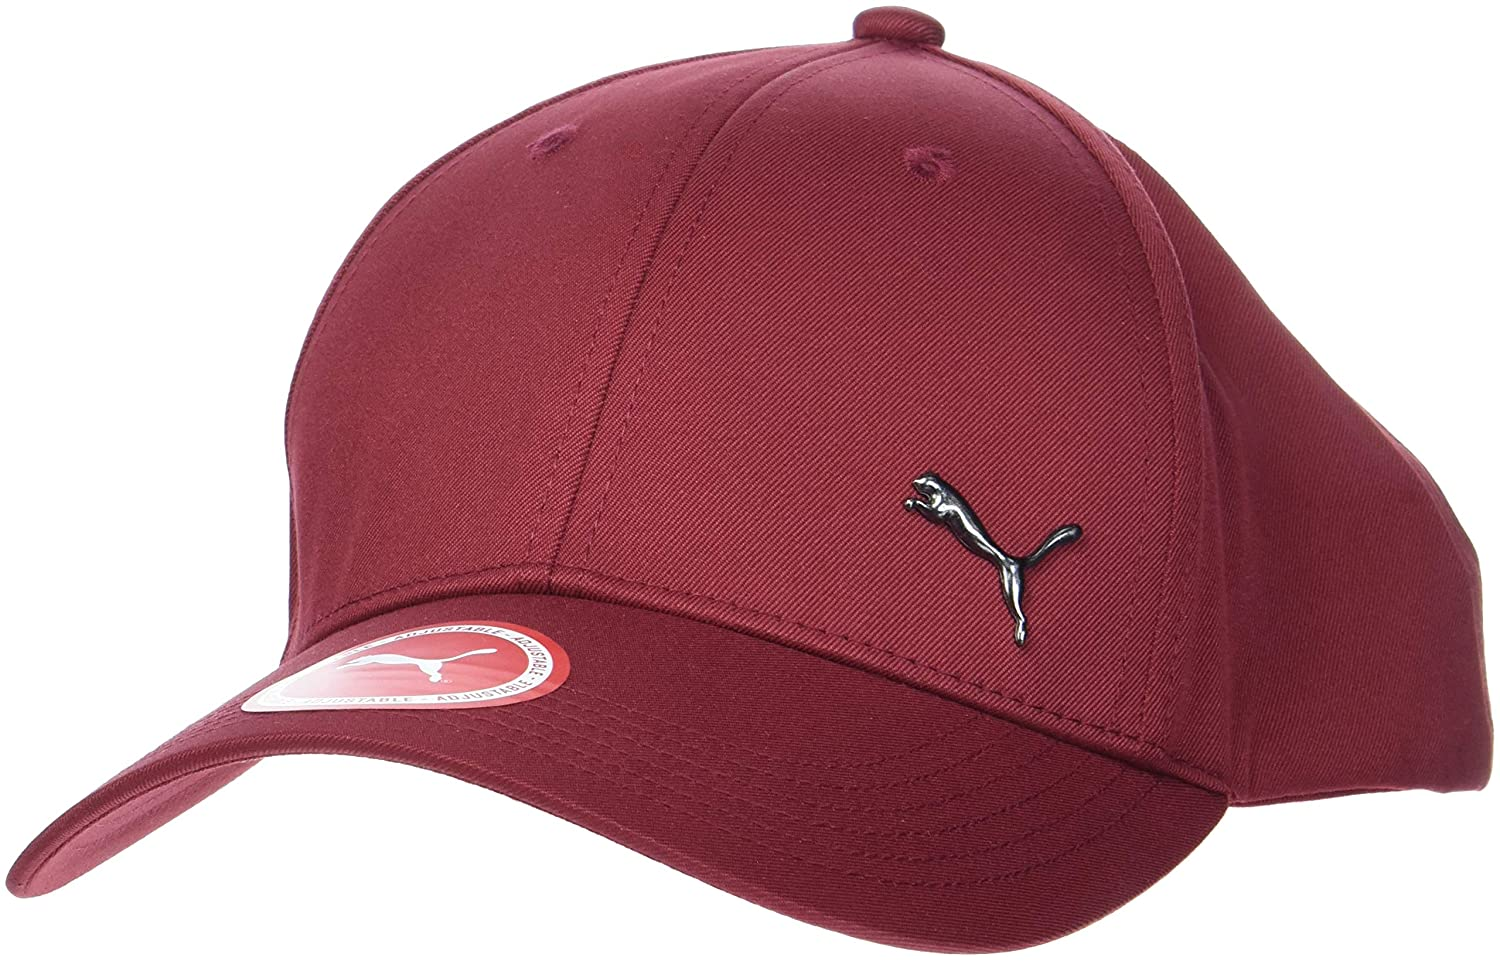 Puma - Gorra Metal Cat, Unisex Adulto, 21269, Pomegranate, Adulto: Amazon.es: Deportes y aire libre